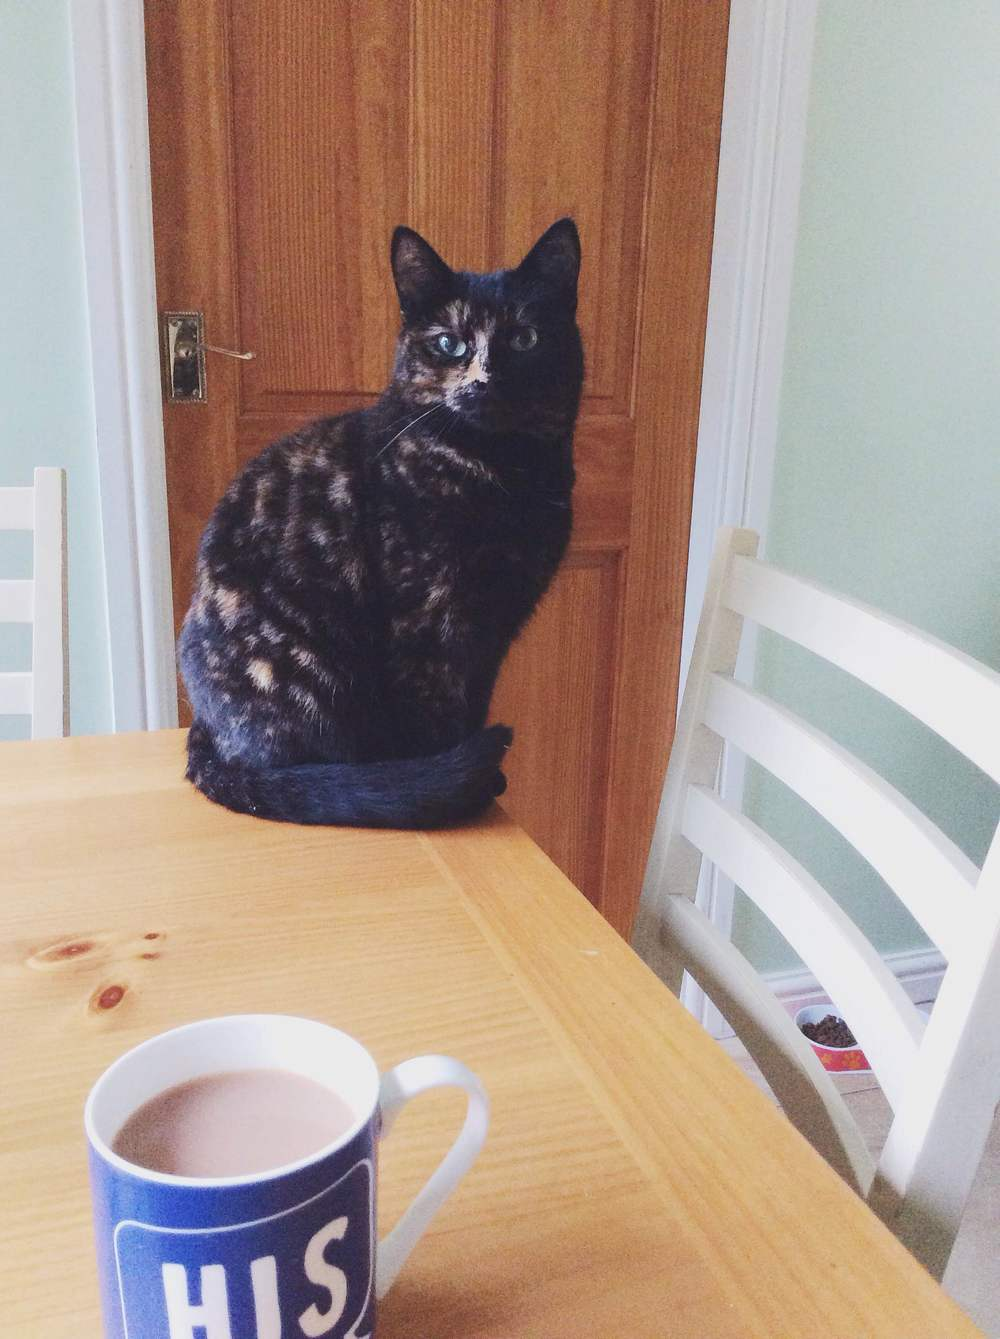 A partner at breakfast time